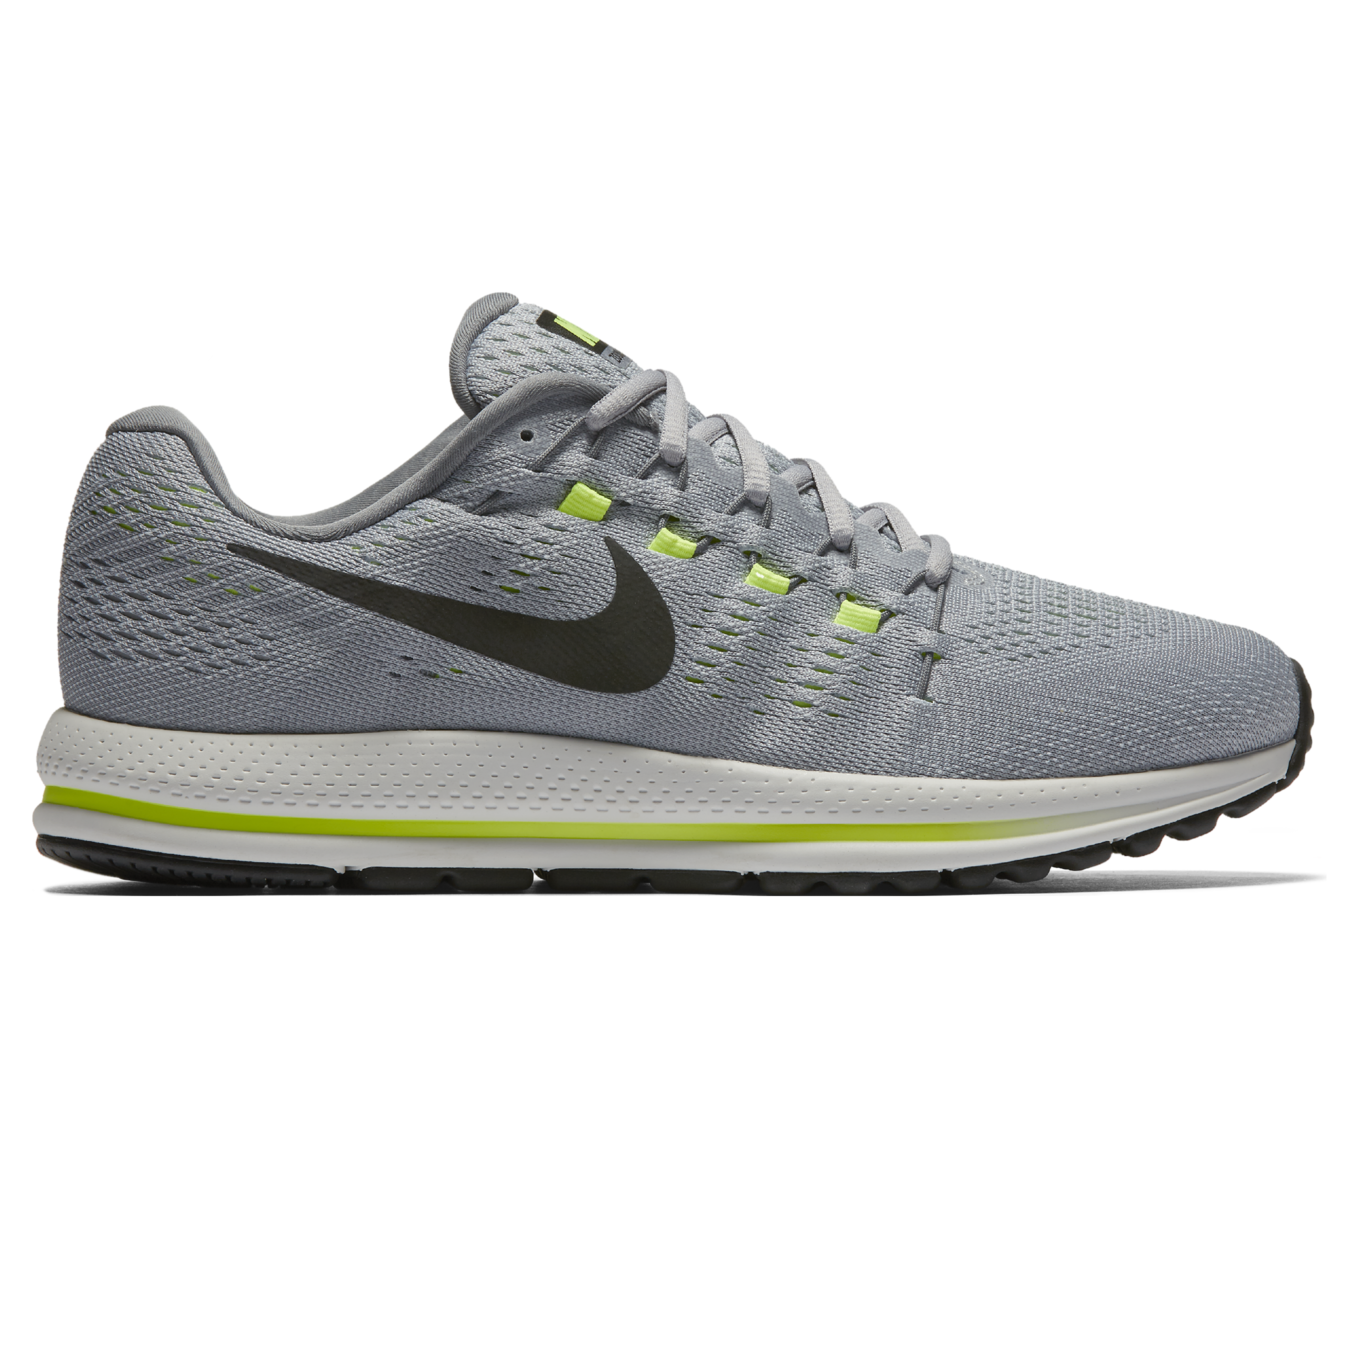 reputable site 0a703 ed910 NIKE AIR ZOOM VOMERO 12 MENS